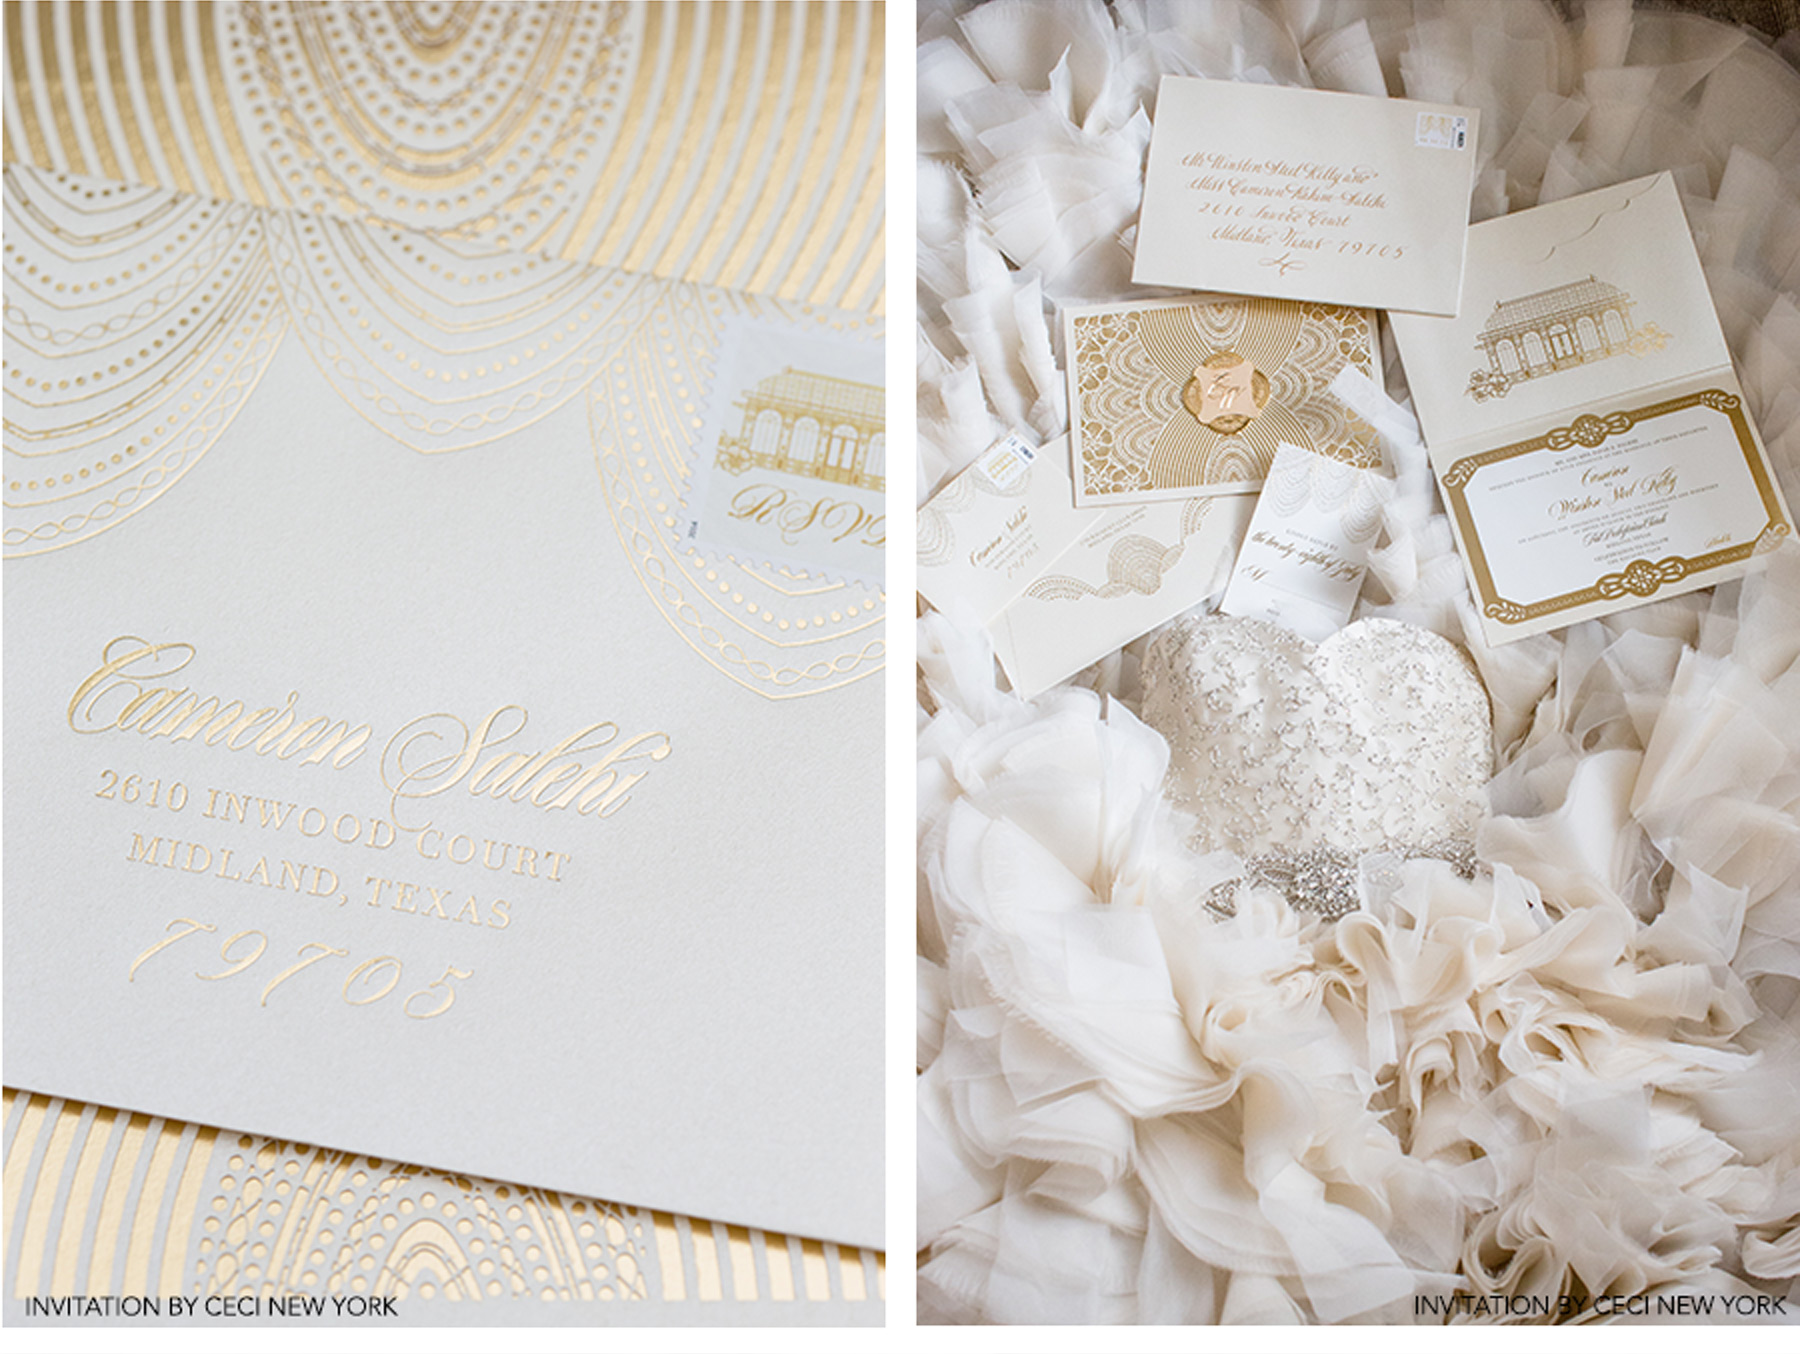 Our Muse - Glamorous Wedding in Texas: Cameron and Winston, Part 4 - Be inspired by Cameron and Winston's glamorous wedding in Texas. - reception, wedding, ceci new york, inspiration, ceci johnson, celebration, bride, groom, event, luxury wedding invitations,  couture, custom wedding invitations, ceci new york, thisbe grace photography, ray roman films, the racquet club, jordan payne events, fearing's, fancy cakes, maitee miles, kenneth pool, naeem khan, jimmy choo, synderela